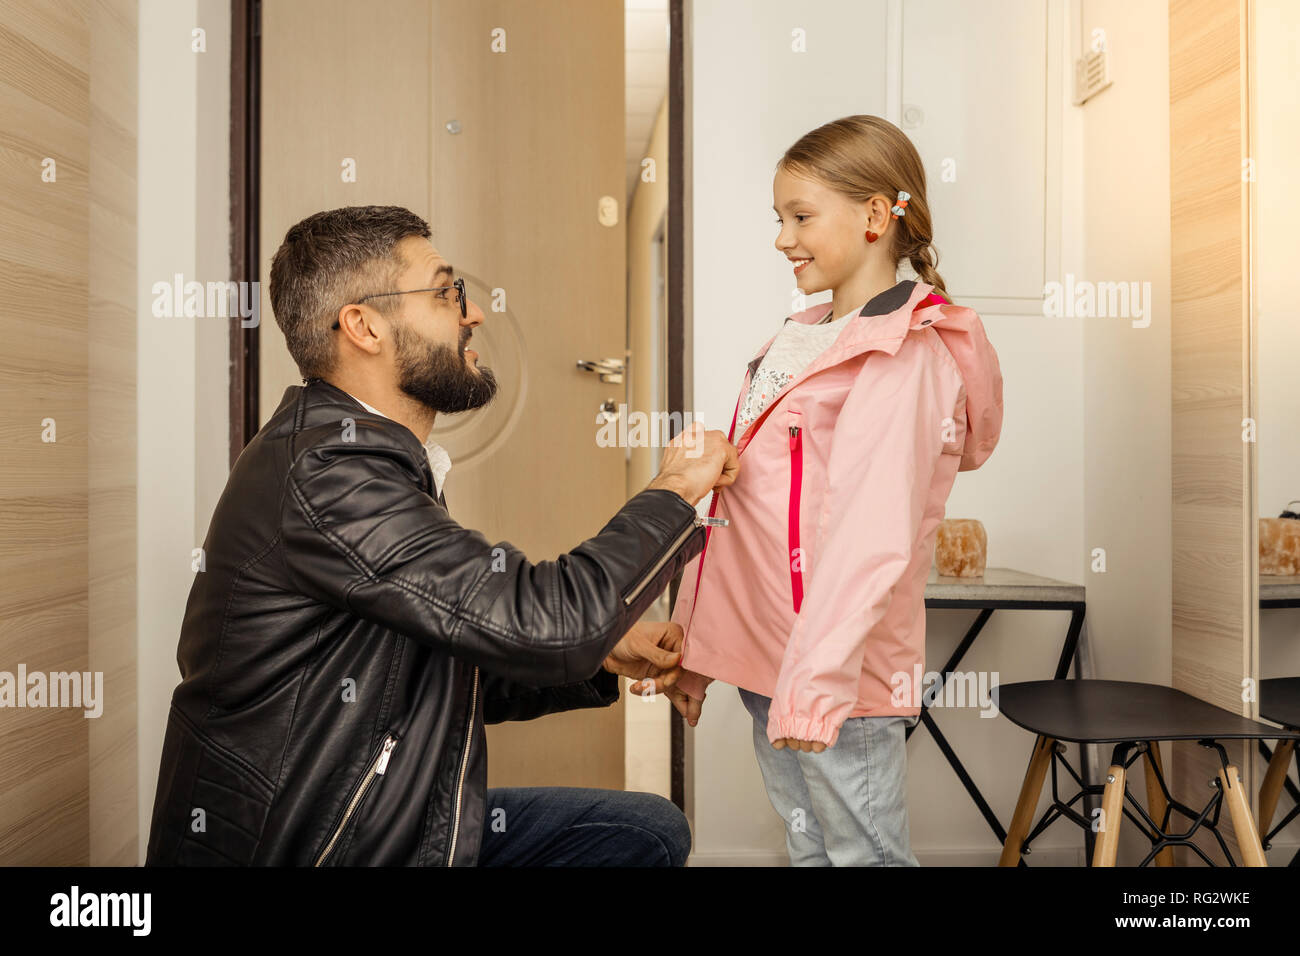 Handsome dark-haired bearded man in eyewear zipping a jacket on his daughter - Stock Image